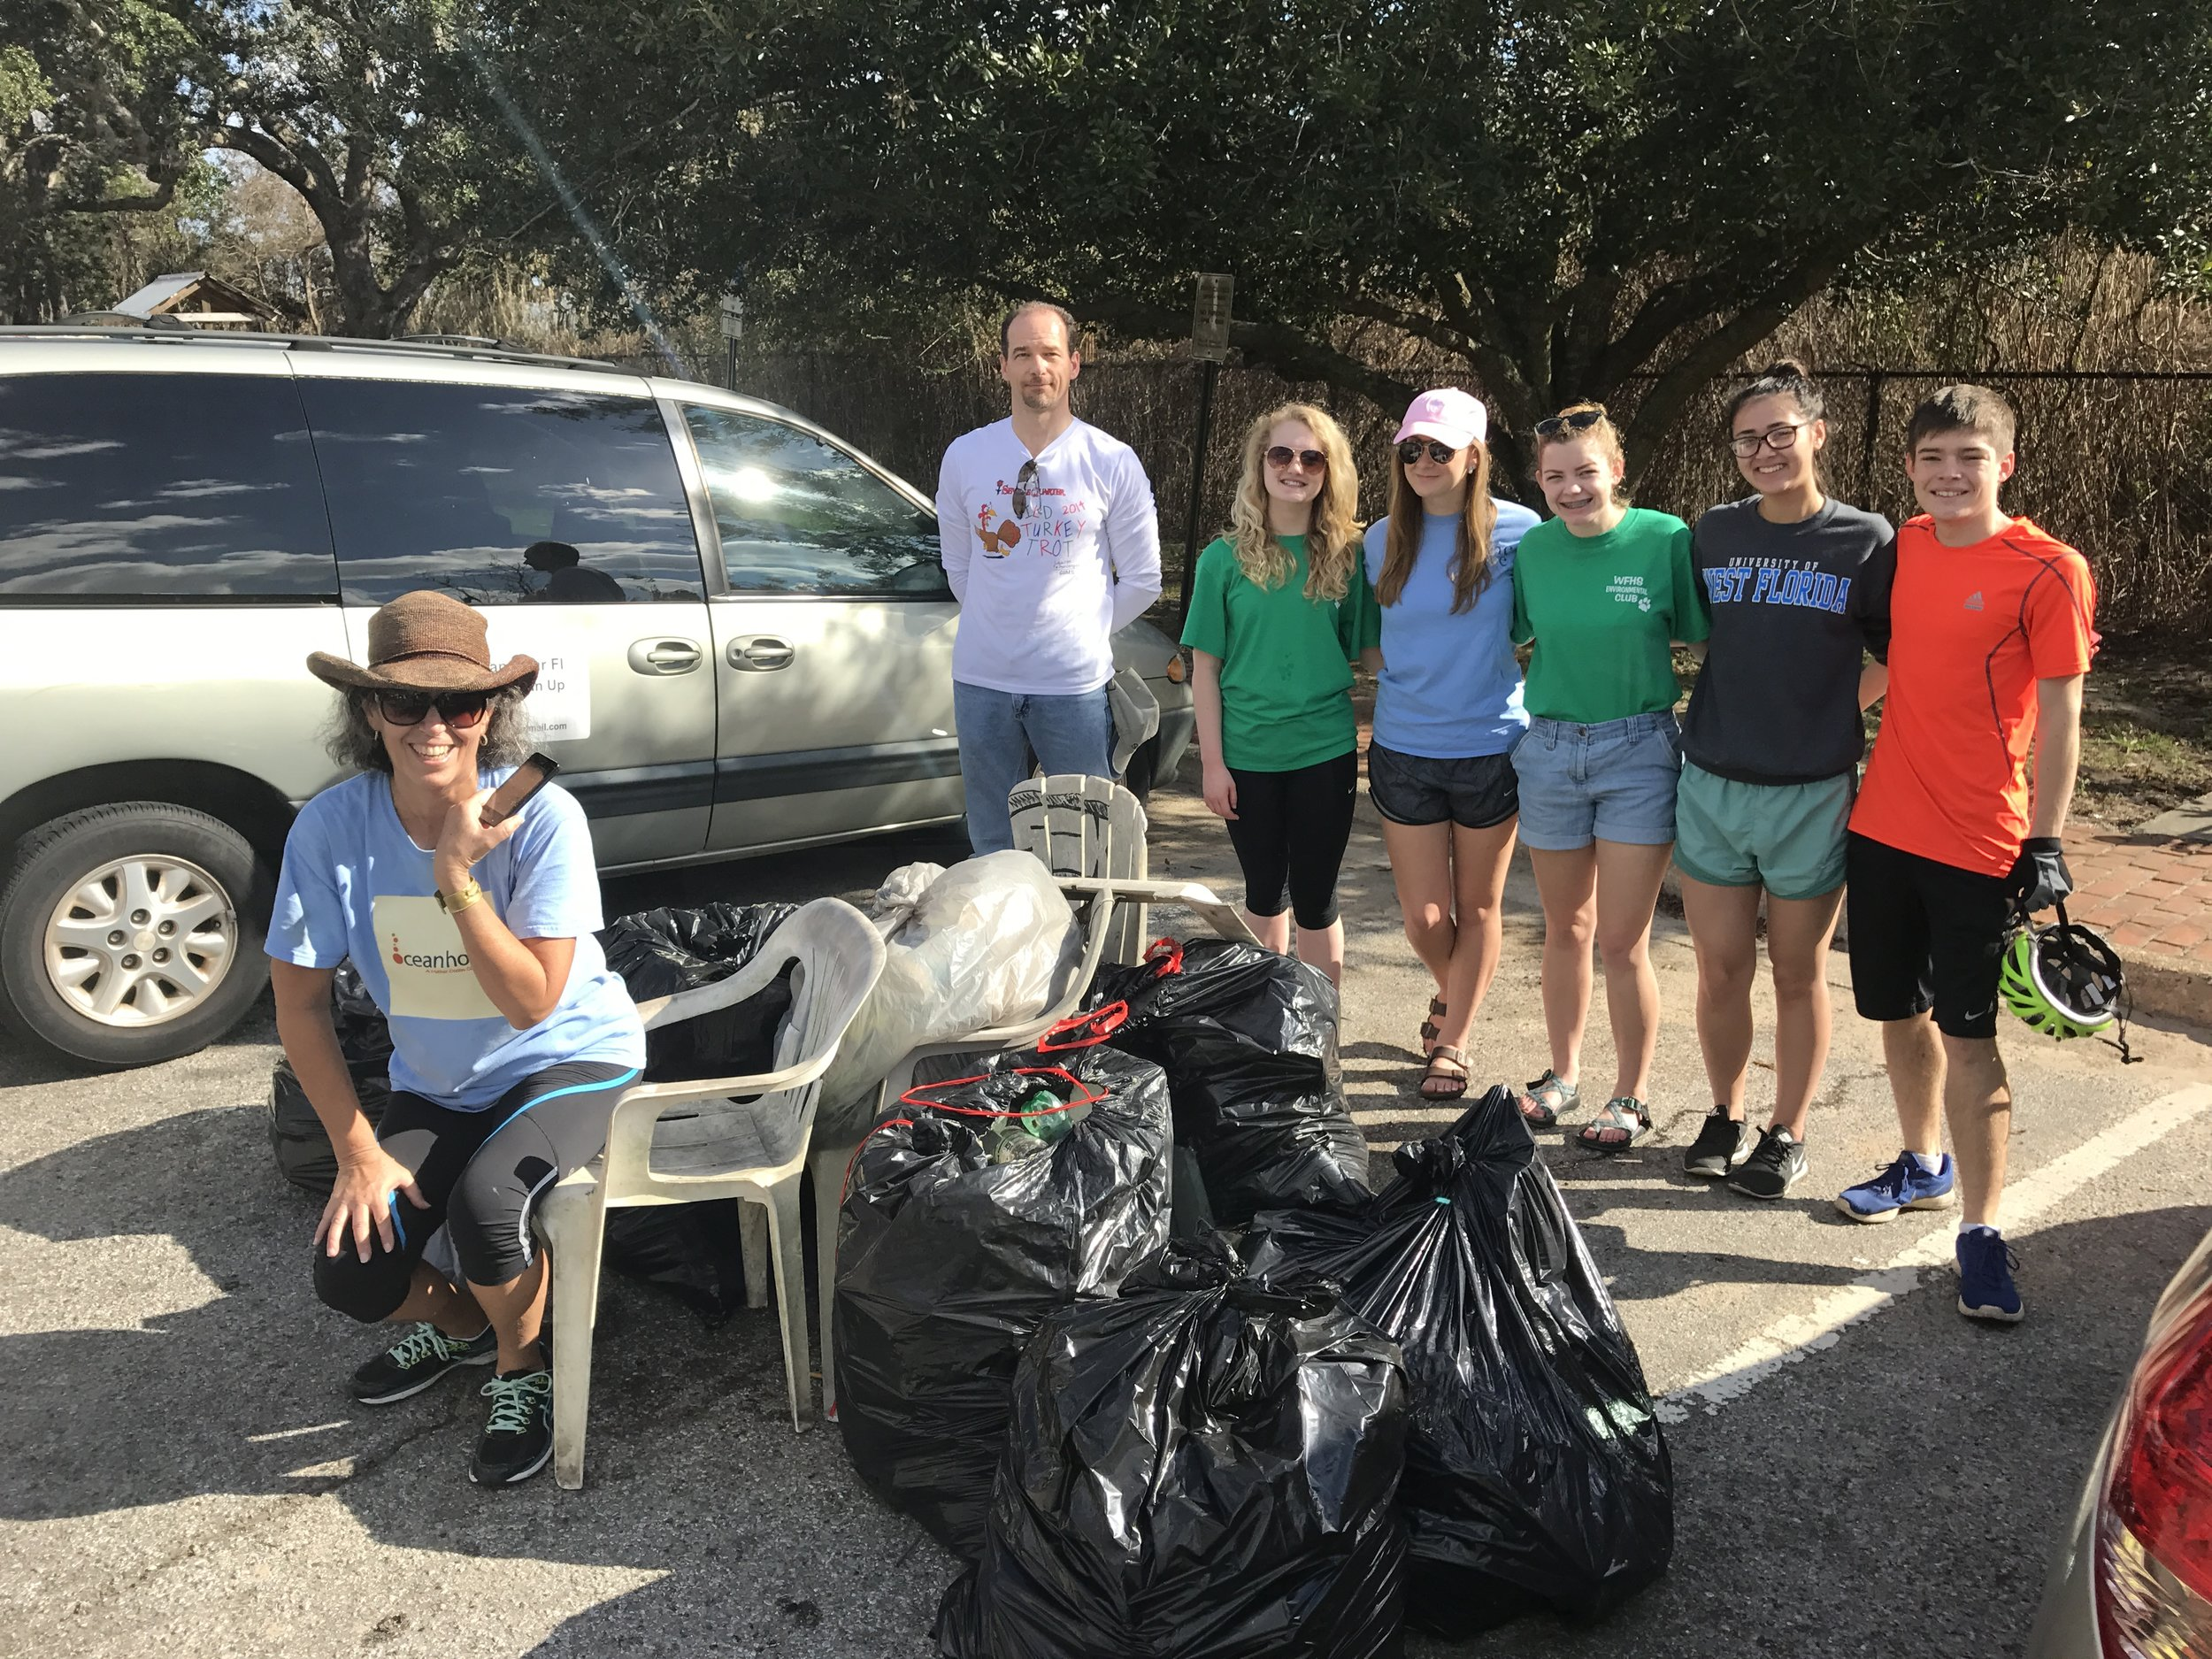 What a difference a week makes - shorts on a beautiful day for 33 volunteers to pick up 296 lbs of trash. New addition to the usual cig buts, styrfoam and beverage containers were 3 lawn chairs.